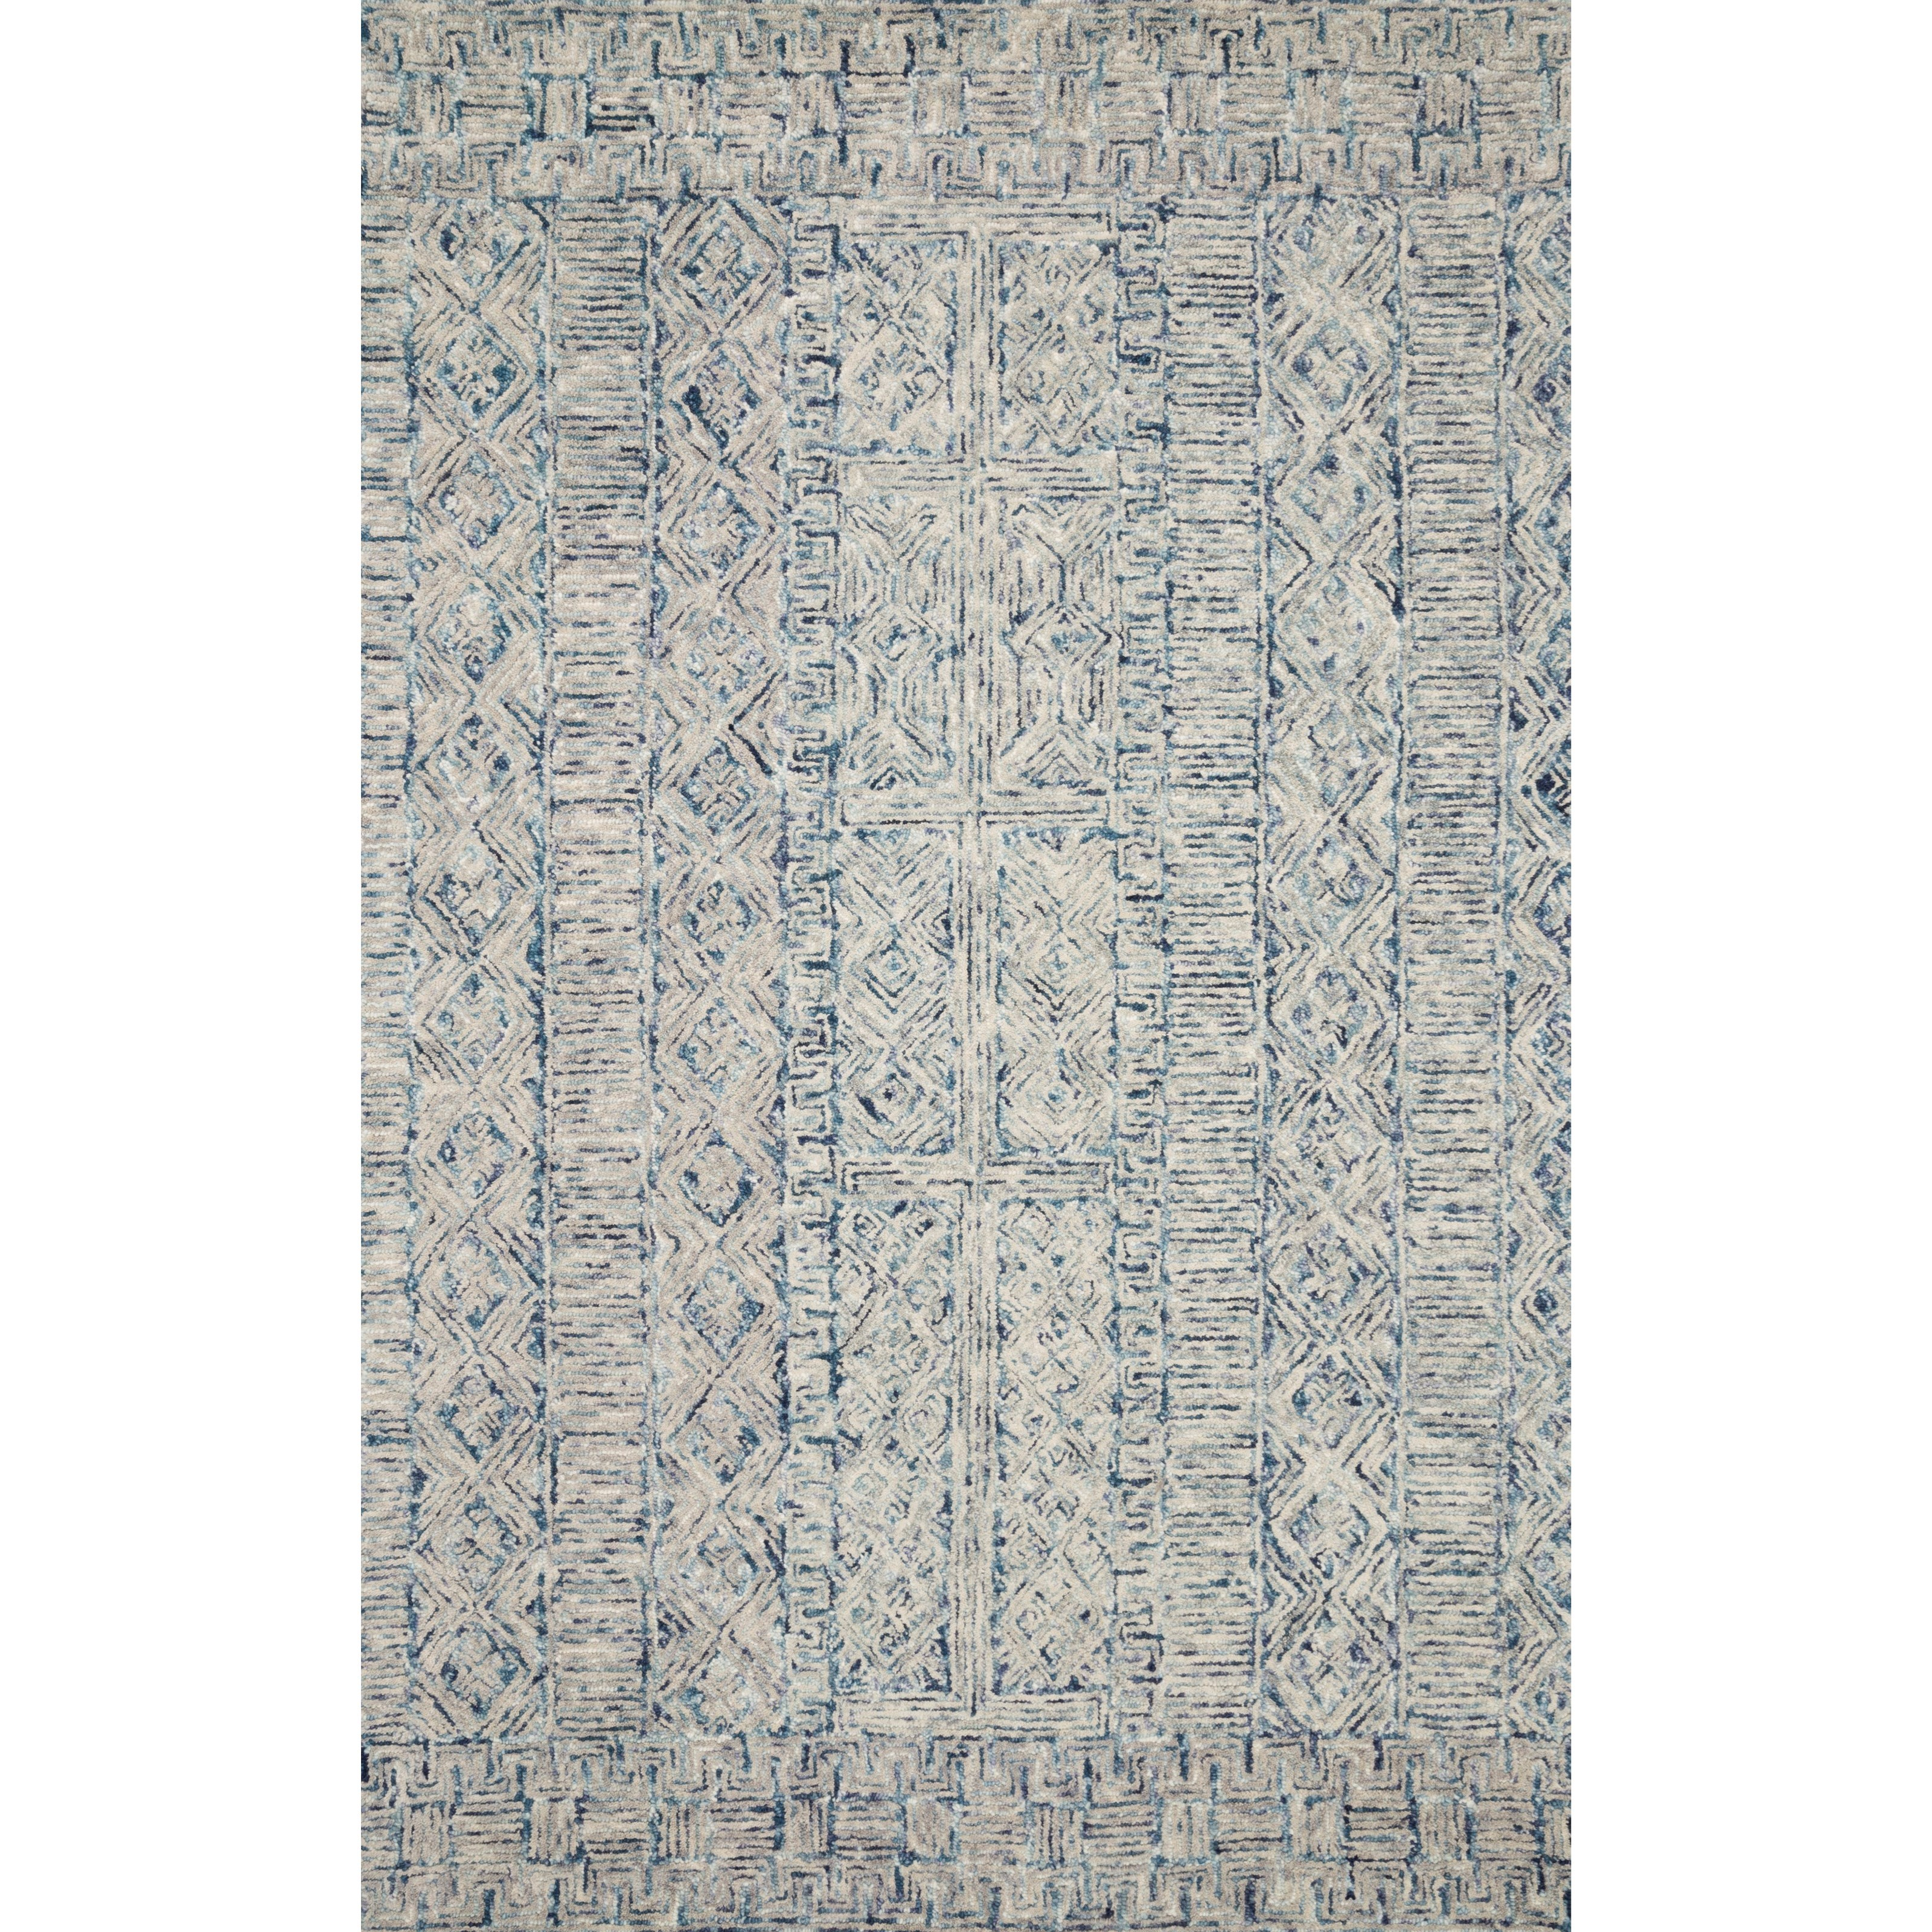 "Peregrine 5'0"" x 7'6"" Ocean Rug by Loloi Rugs at Virginia Furniture Market"